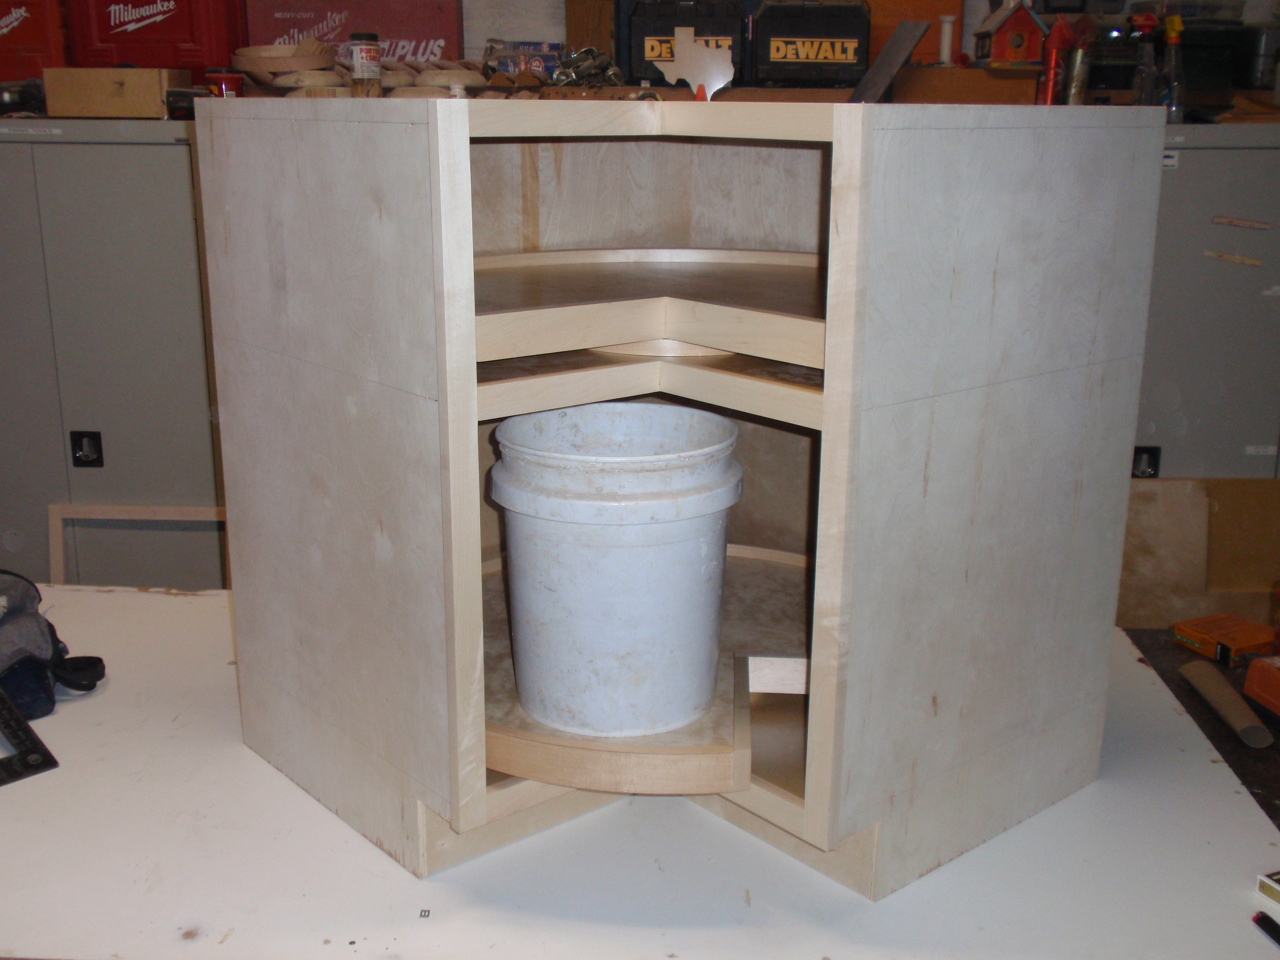 Easy reach lazy susan built for 5 gallon buckets